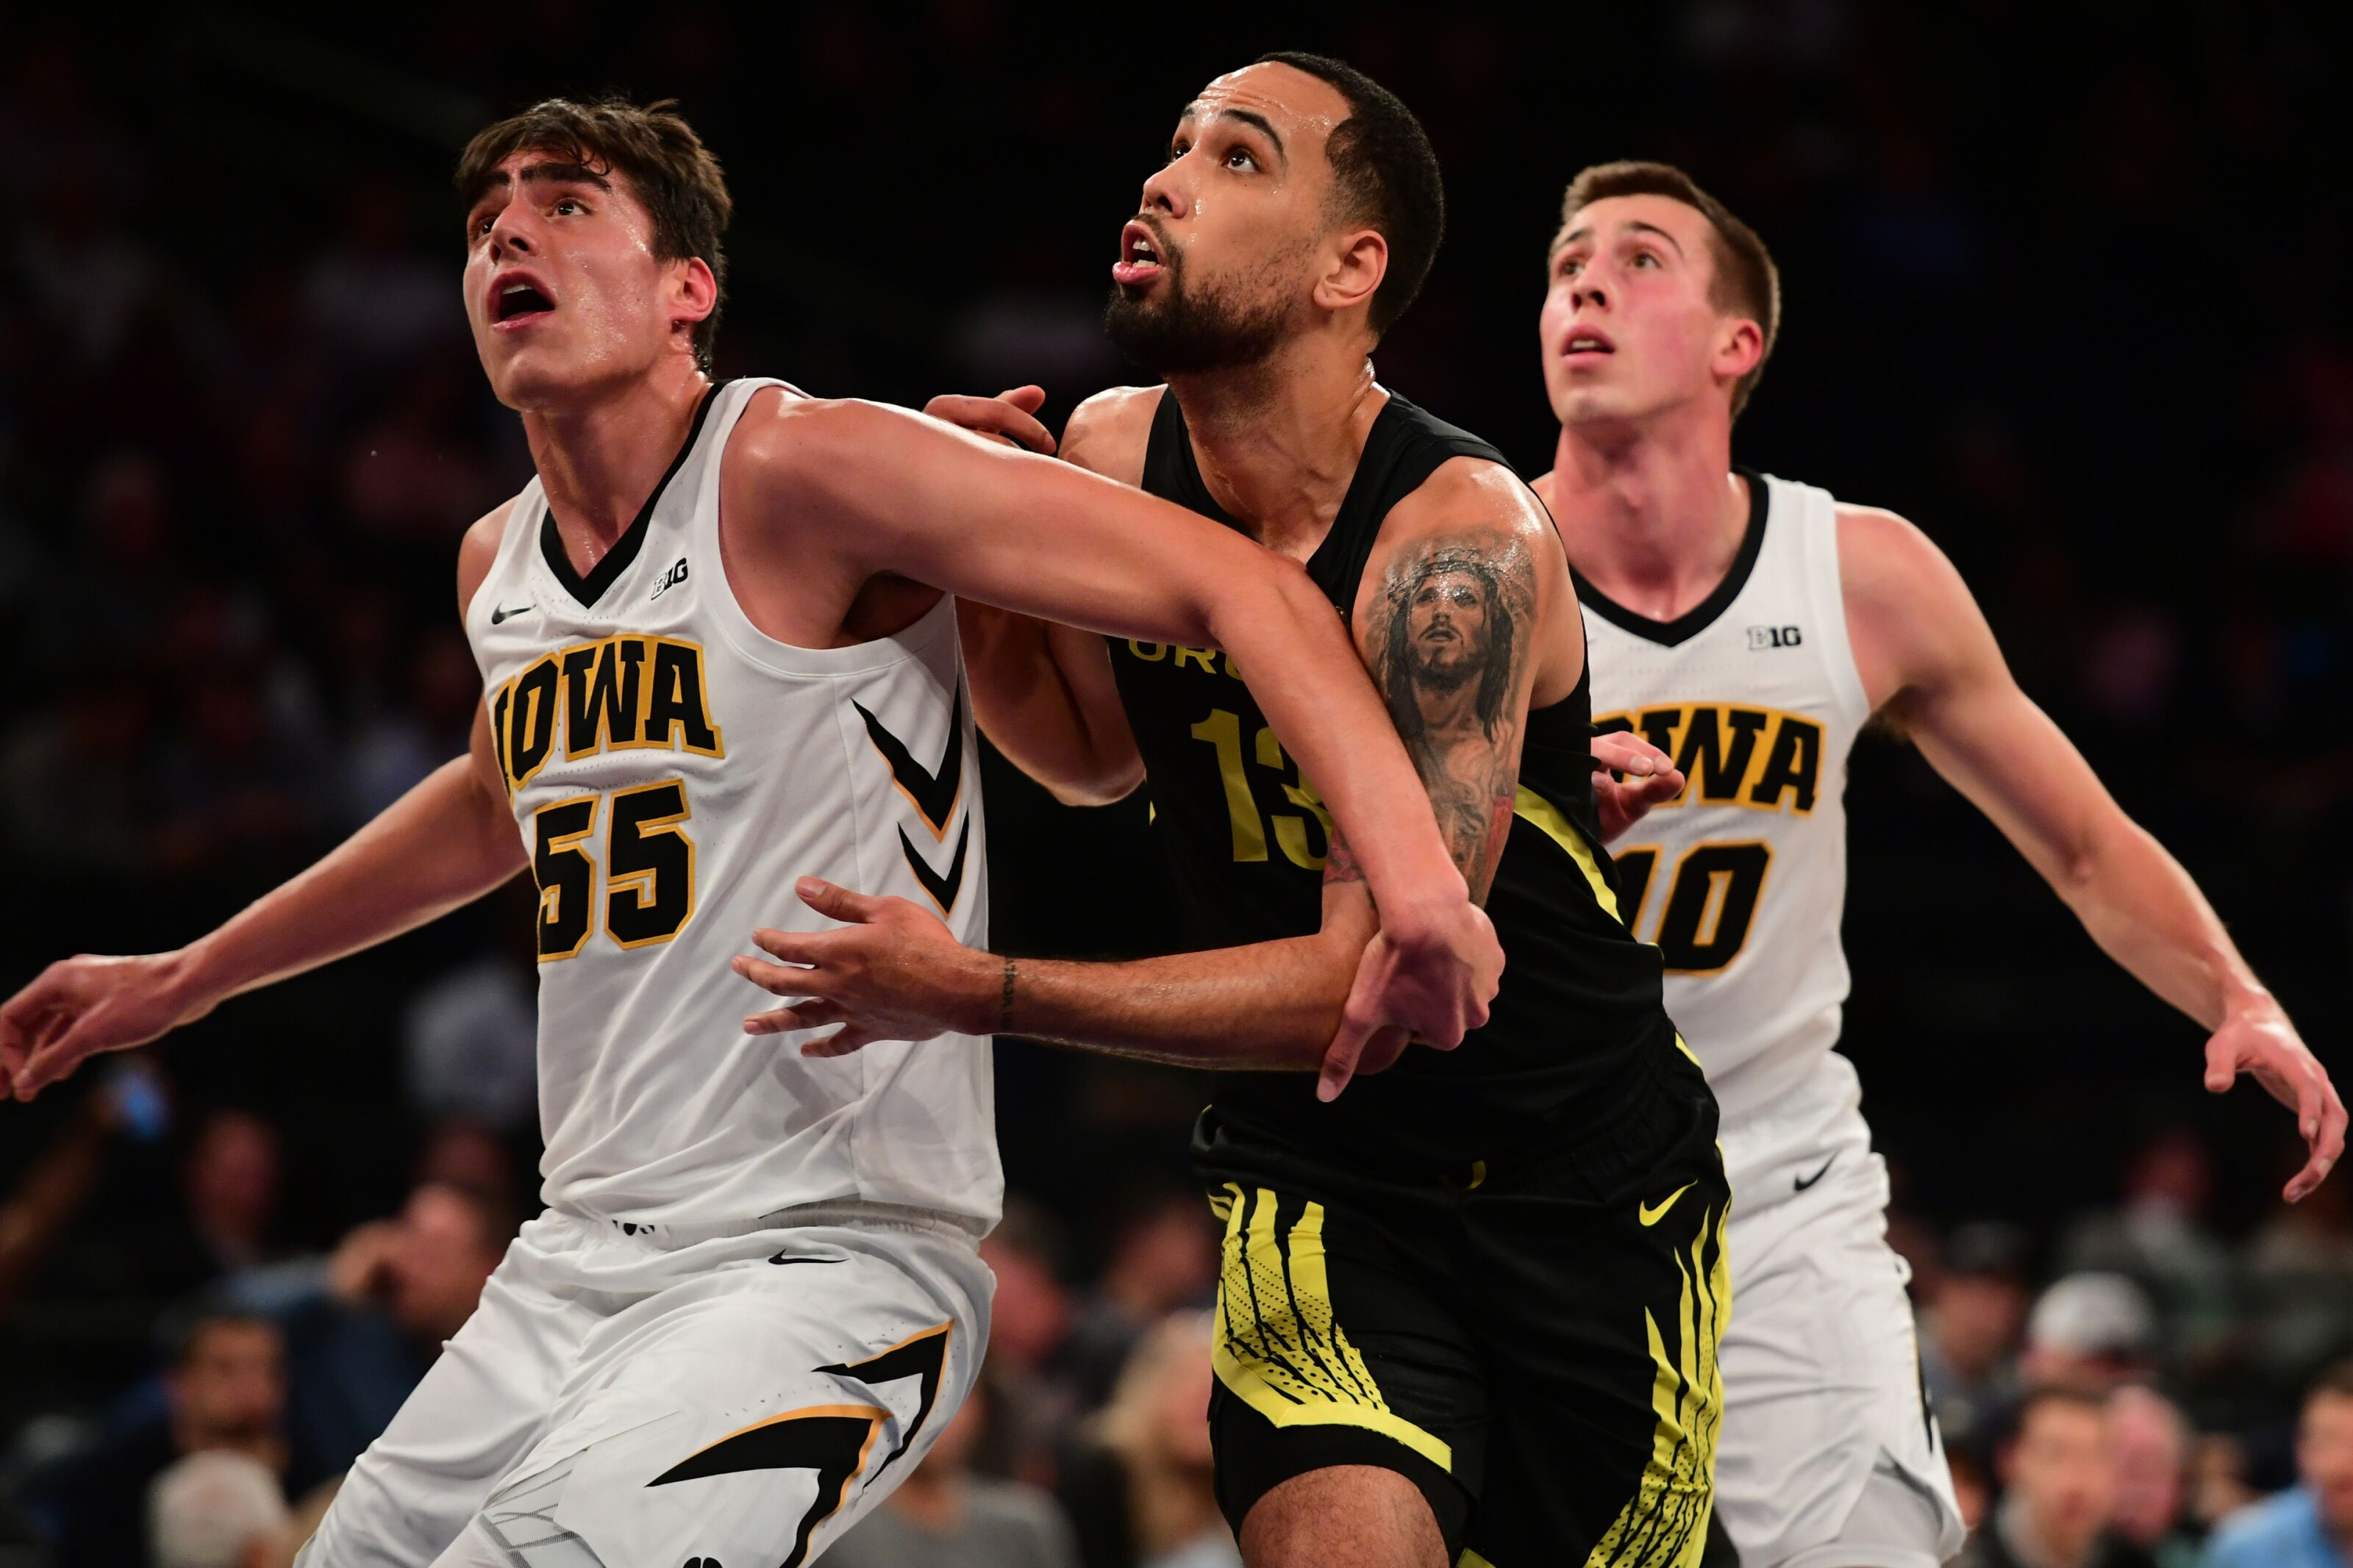 Iowa vs Purdue Iowa returns to Big Ten action when it travels to Purdue on Thursday Tipoff is set for 601 pm CT at Mackey Arena in West Lafayette Indiana